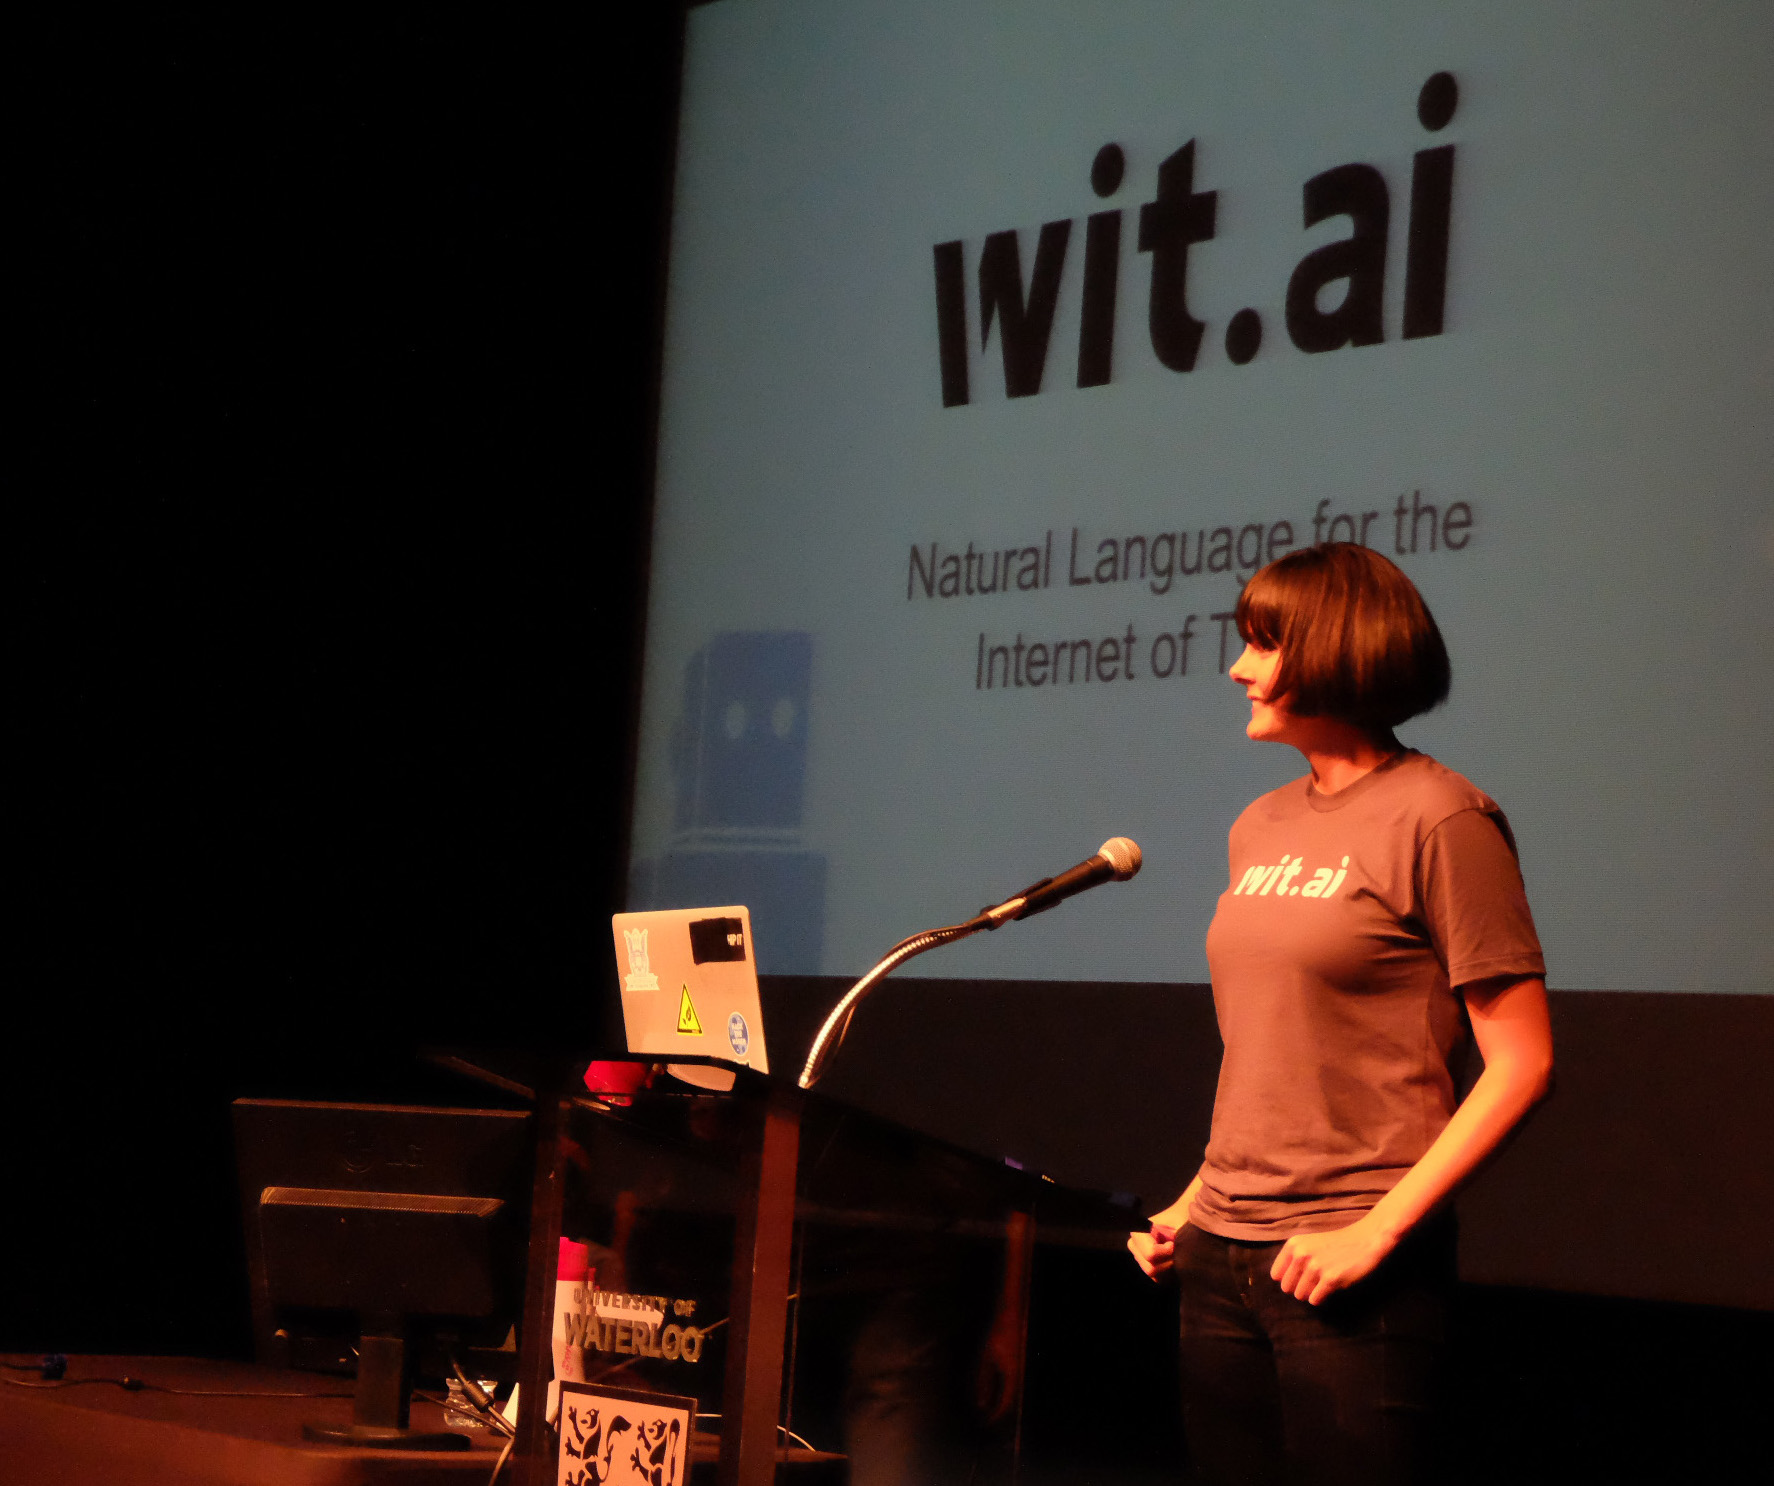 Introducing Wit.ai during the opening ceremonies at the Hack The North Hackathon